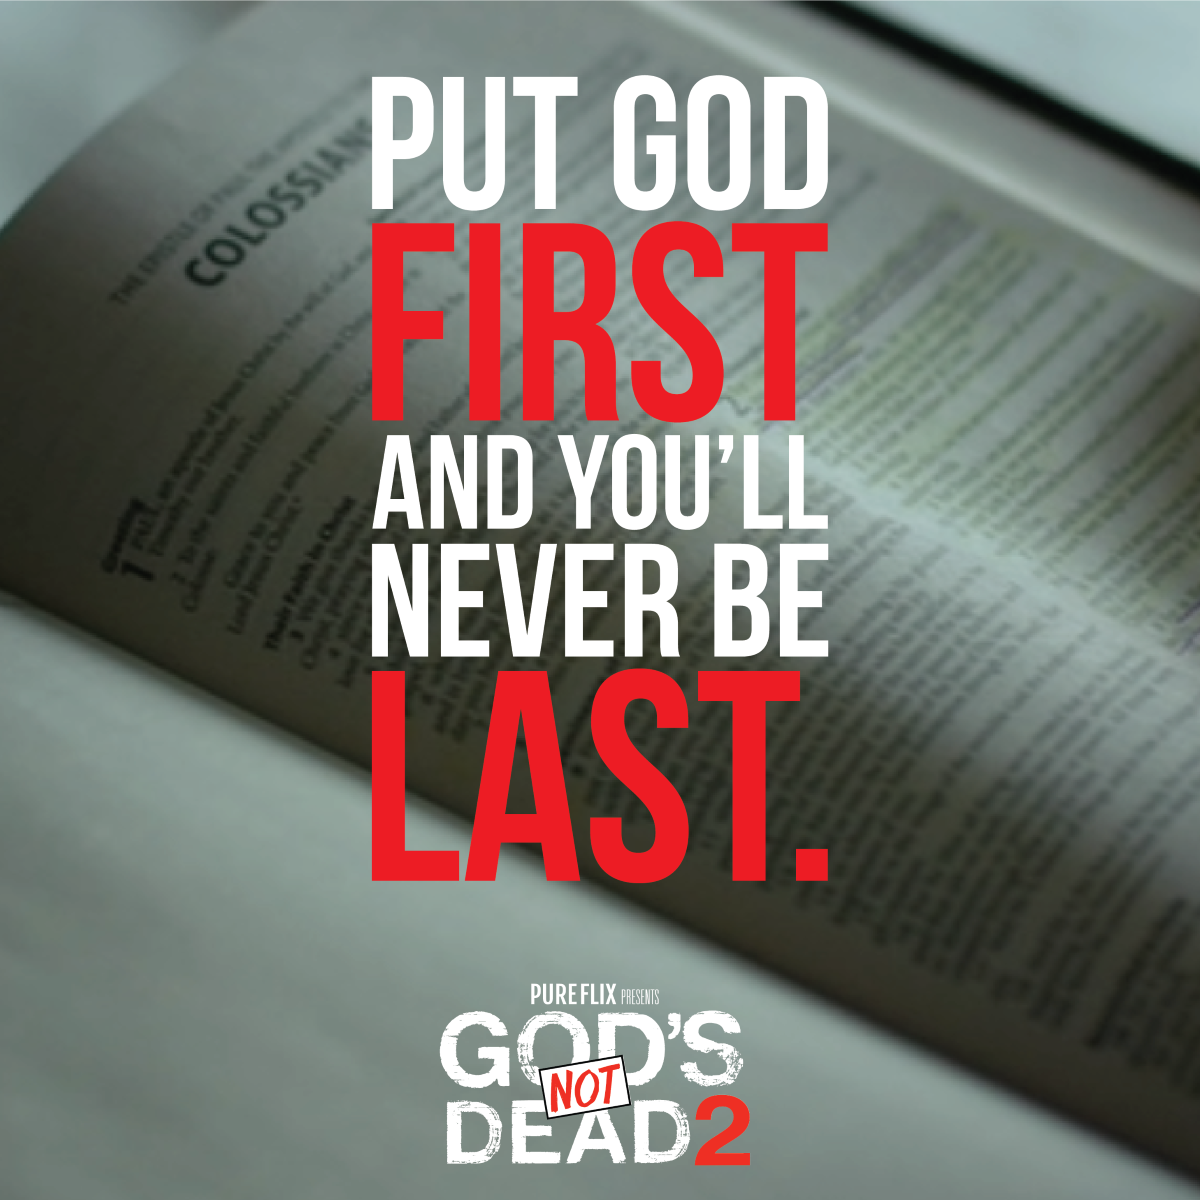 what does the bible say about putting god first